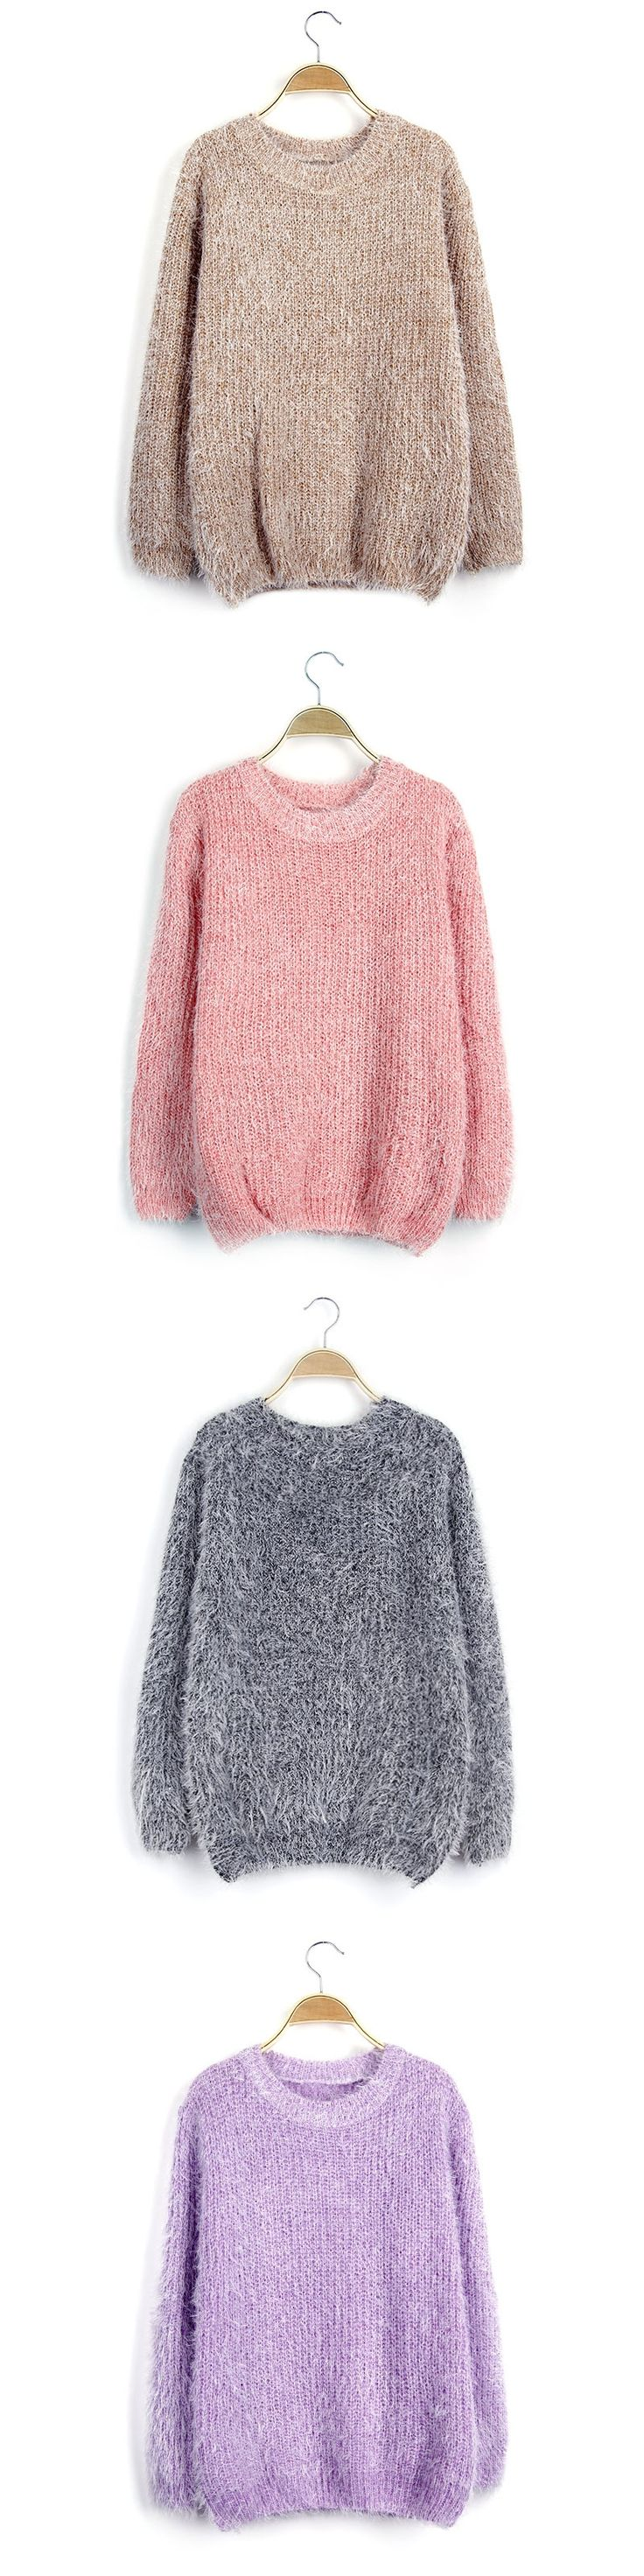 Candy Color Furry 2016 Winter Women Loose Sweater Lady Pull Over Knit Tops mohair for fat noodle Sweaters Round Neck Long Sleeve